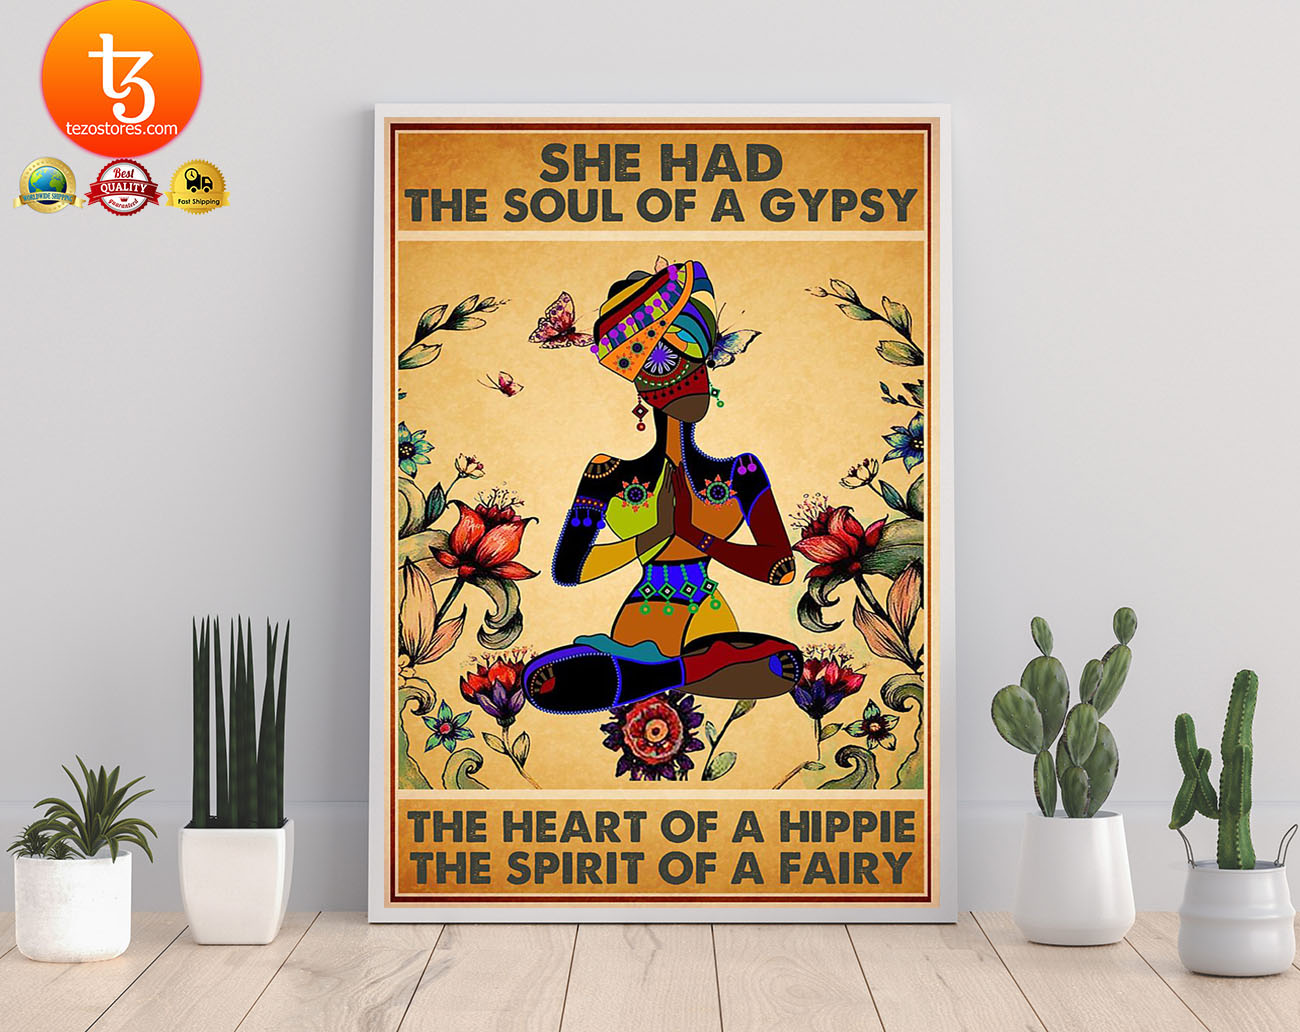 She has the soul of a gypsy the heart of a hippie and the spirit of a fairy poster